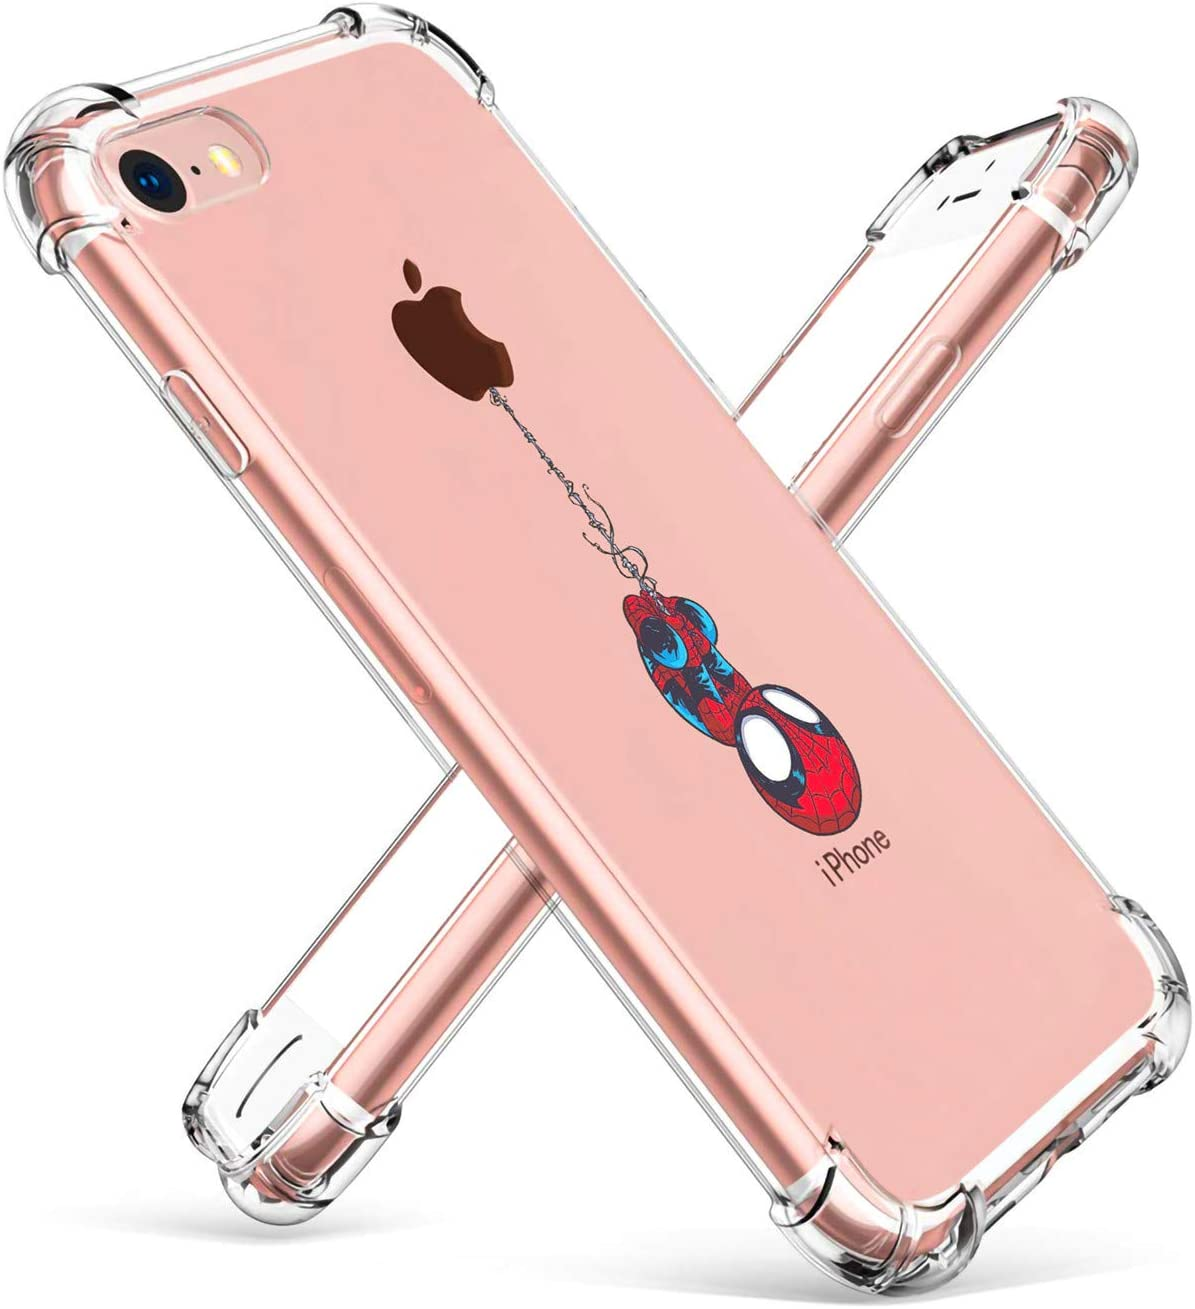 """Logee TPU Spider Funny Cute Cartoon Clear Case for iPhone 6 Plus/6S Plus 5.5"""",Fun Kawaii Animal Soft Protective Cover,Ultra-Thin Shockproof Creative Character Cases for Kids Teens Girls Boys (6Plus)"""